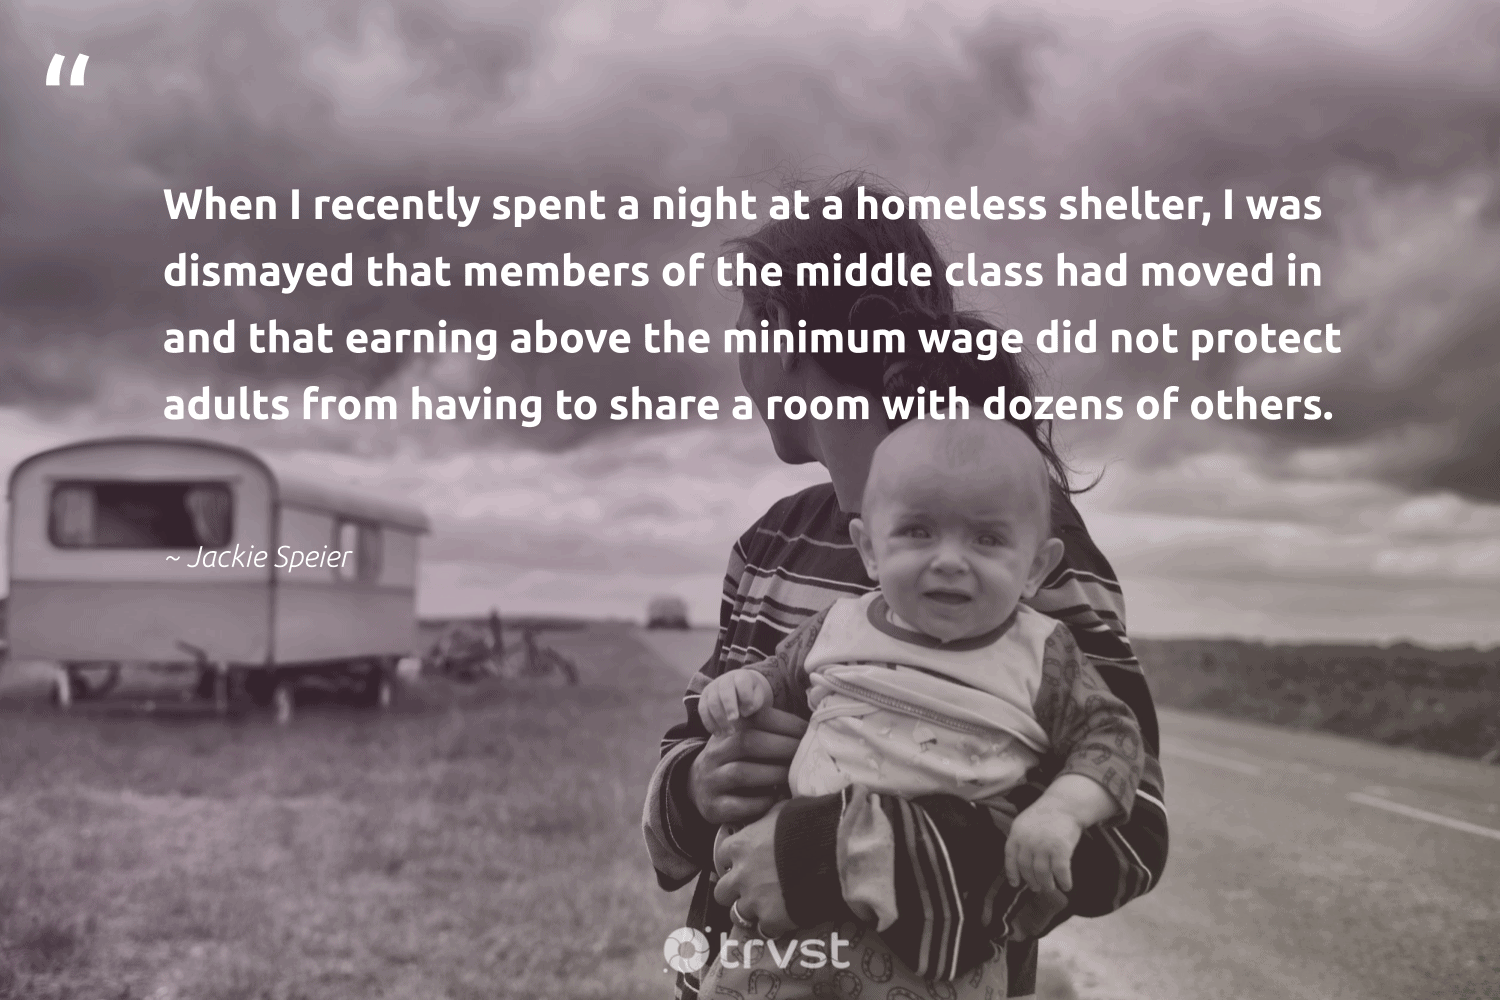 """""""When I recently spent a night at a homeless shelter, I was dismayed that members of the middle class had moved in and that earning above the minimum wage did not protect adults from having to share a room with dozens of others.""""  - Jackie Speier #trvst #quotes #homelessness #homeless #weareallone #equalrights #collectiveaction #sustainablefutures #makeadifference #beinspired #inclusion #equalopportunity"""